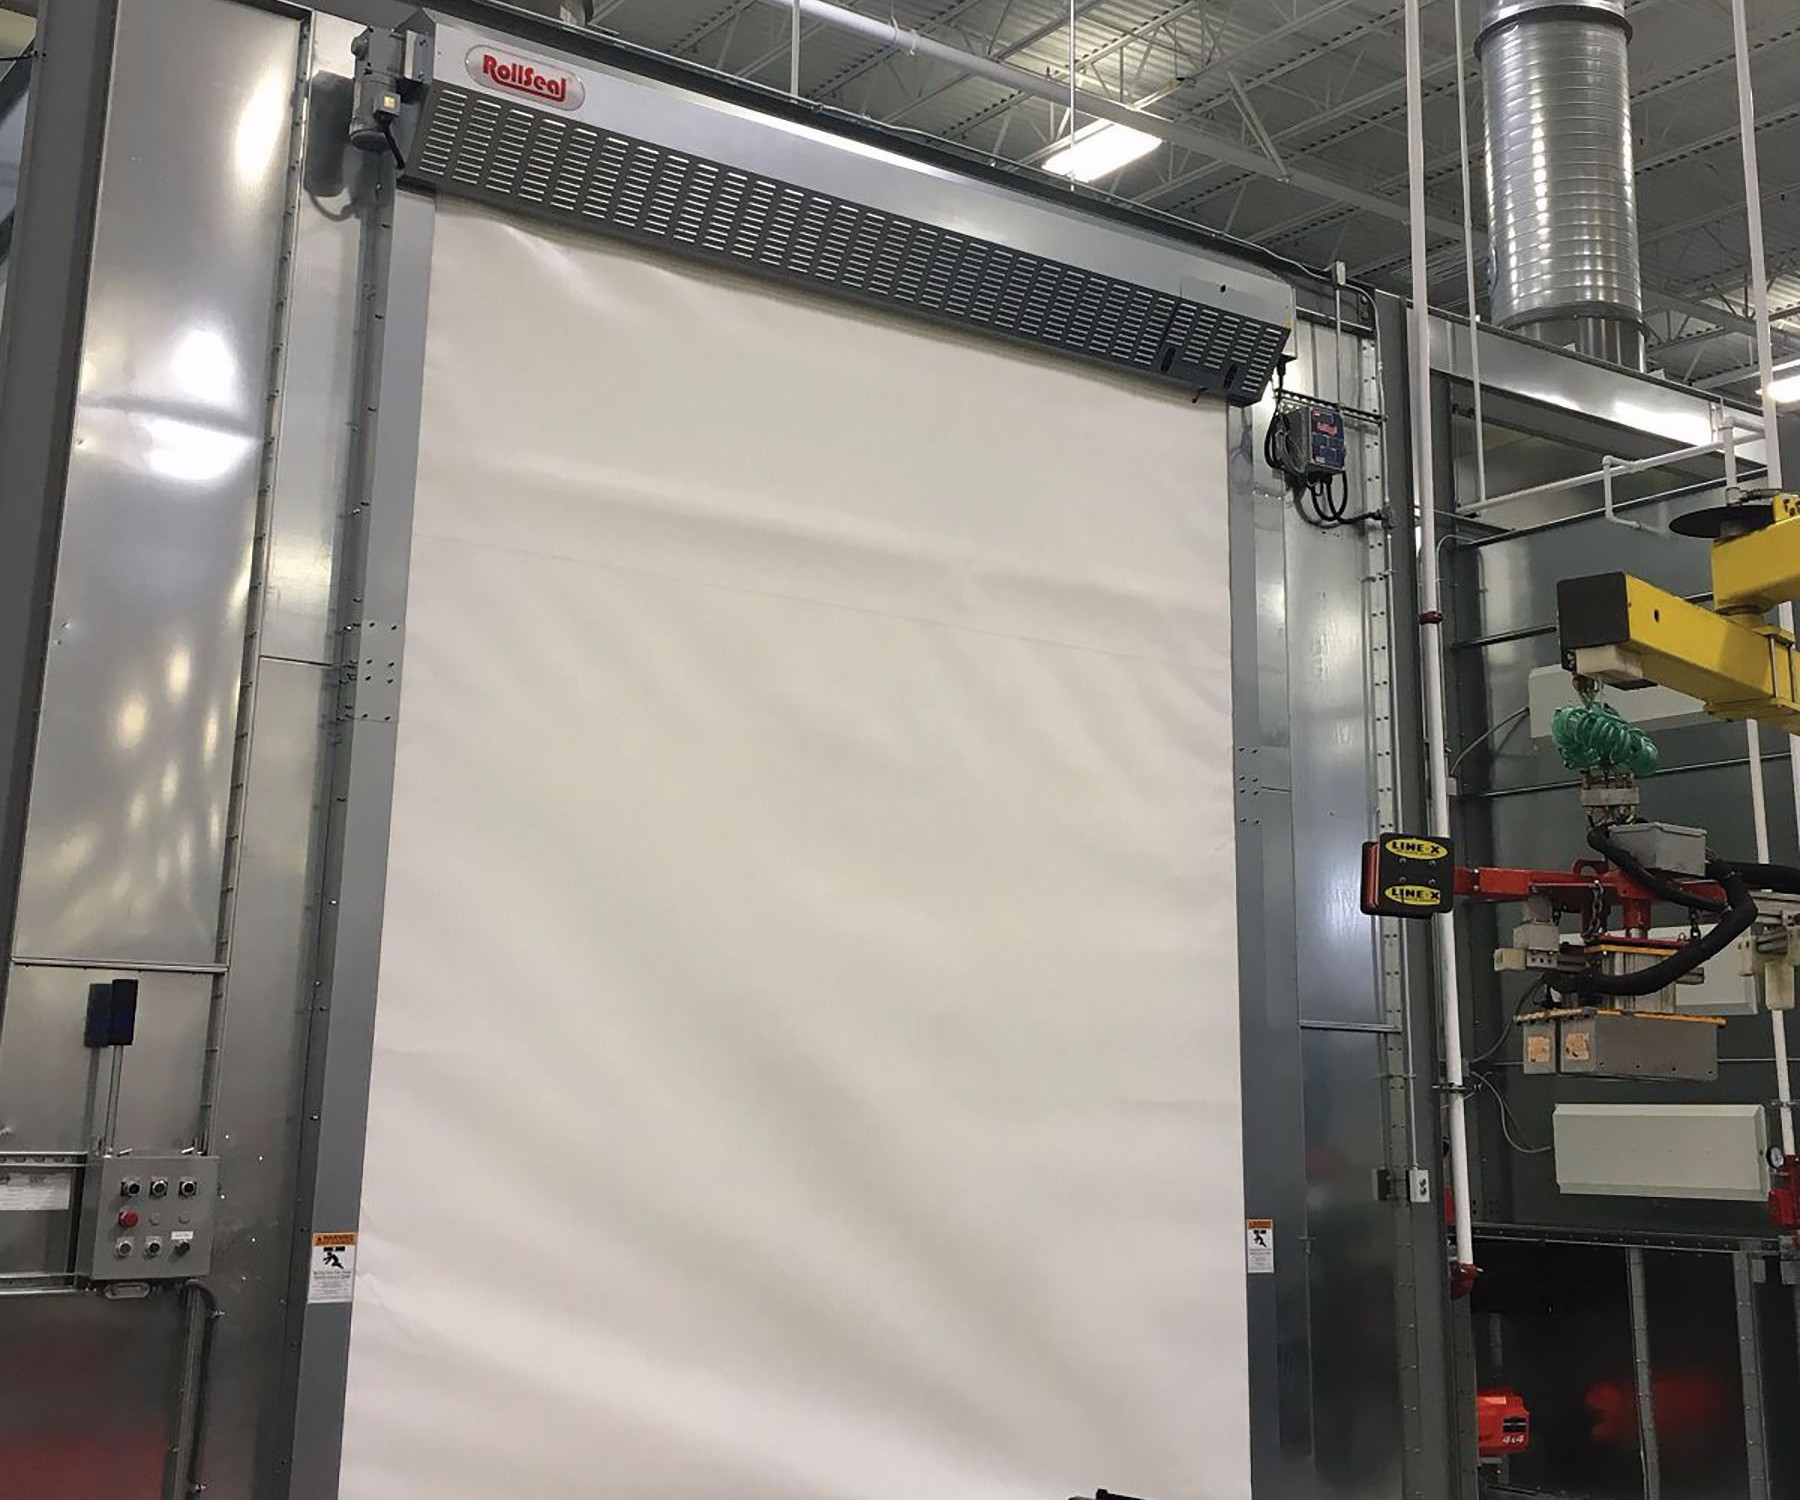 RollSeal fabric oven door & Fabric Oven Door Withstands Temps as High as 500°F : Products ... pezcame.com